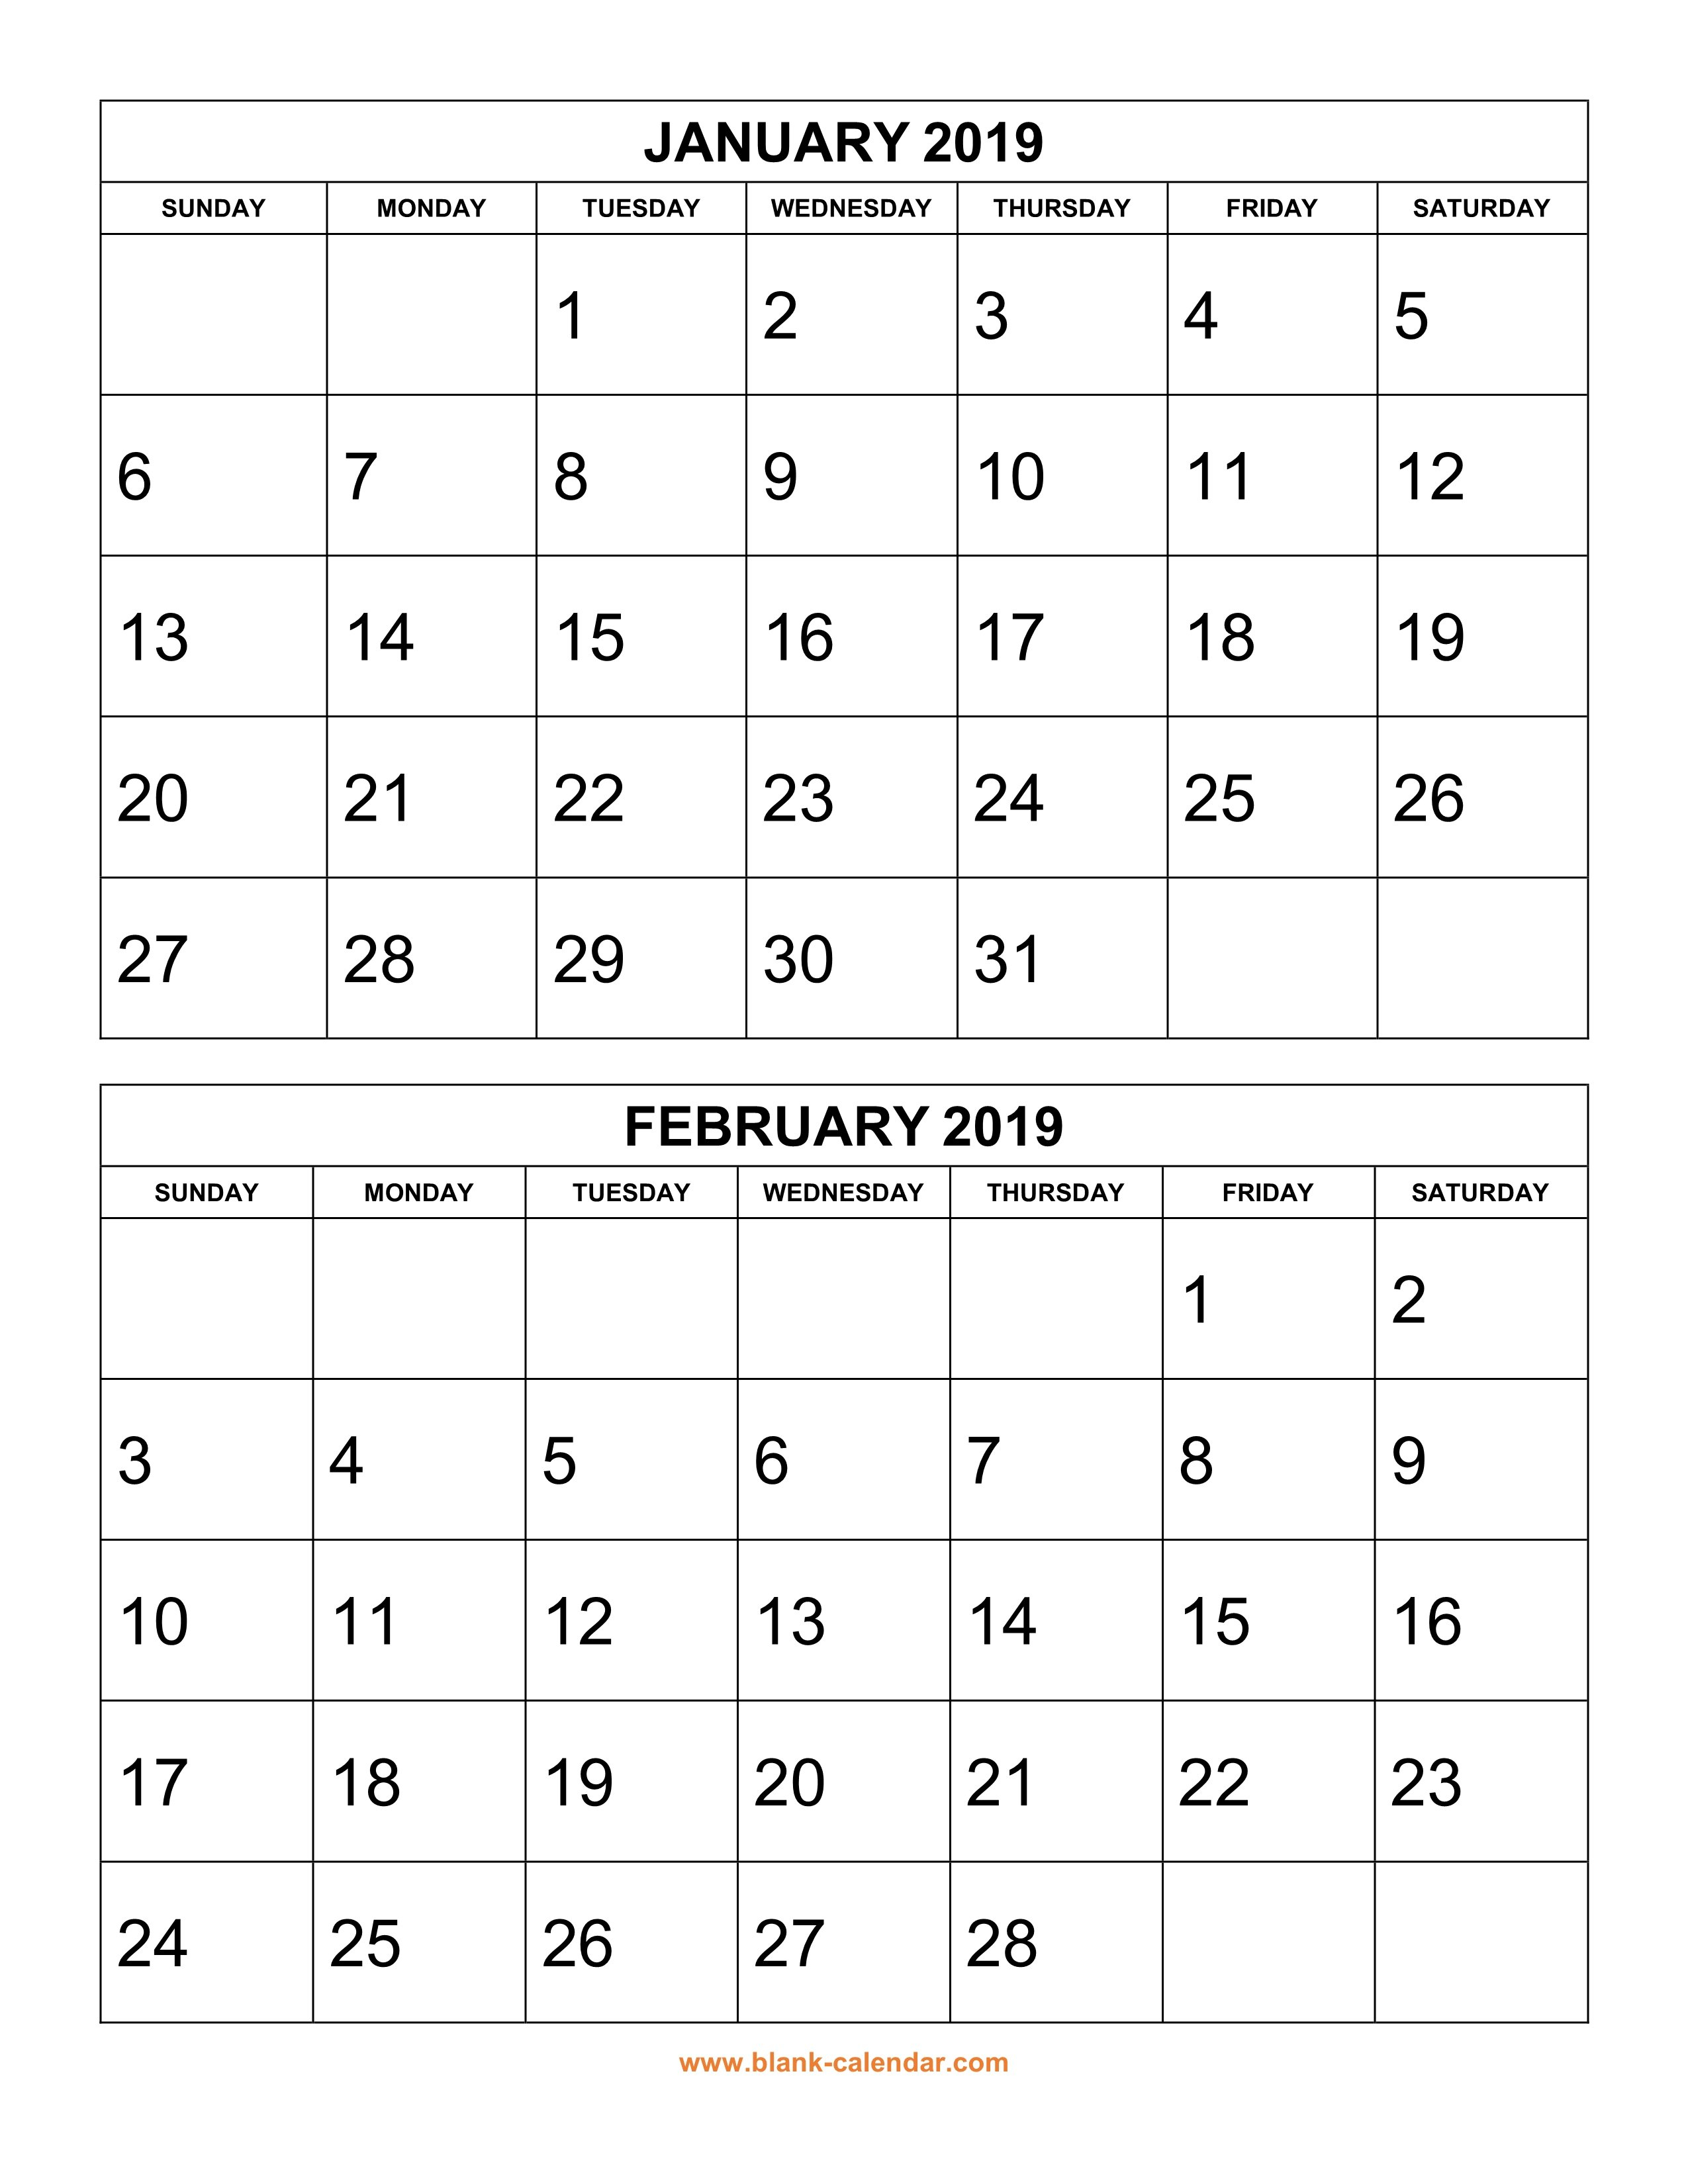 Free Download Printable Calendar 2019, 2 Months Per Page, 6 Pages Calendar 2019 6 Months